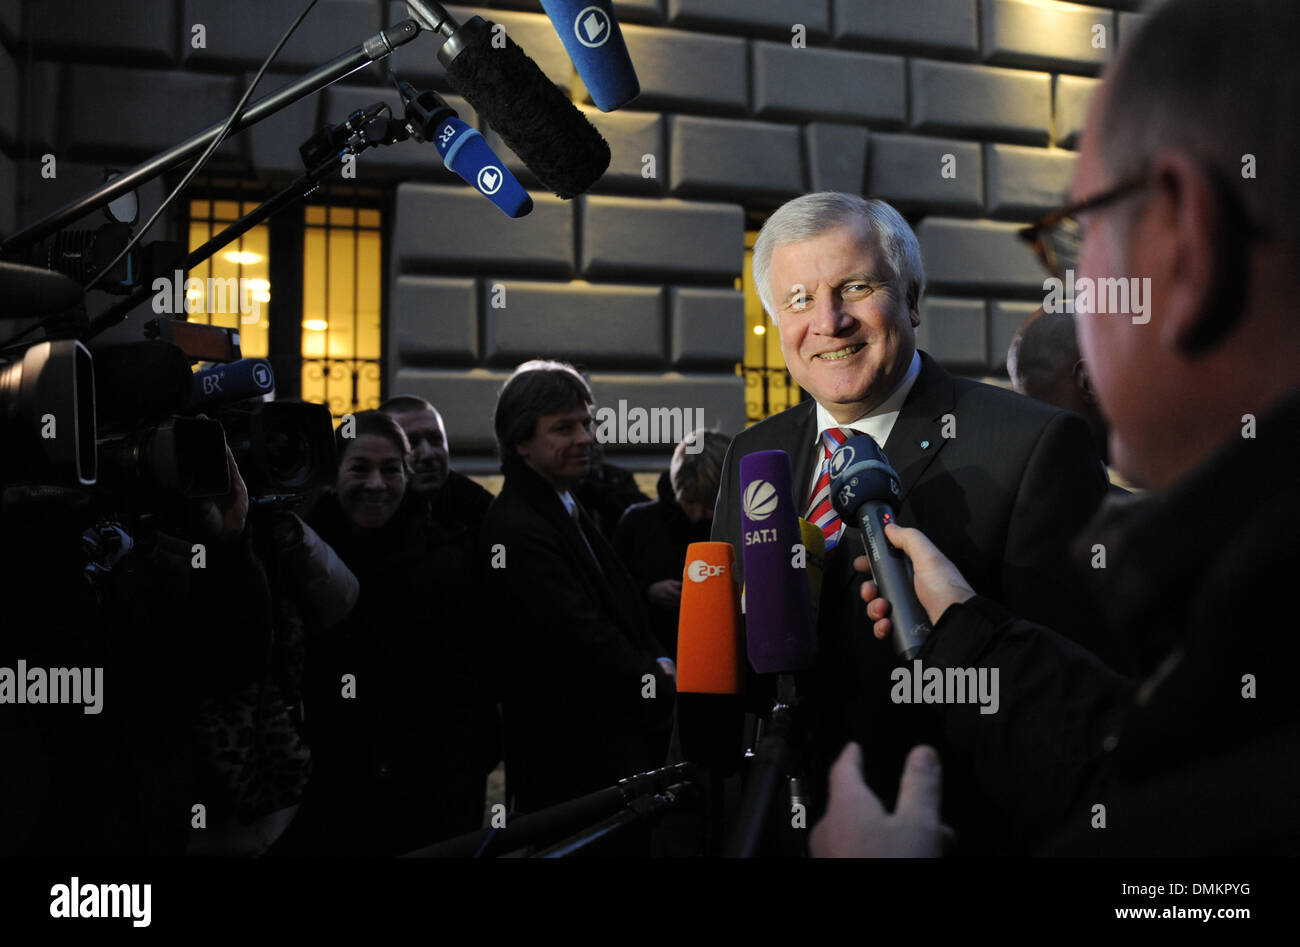 Munich, Germany. 15th Dec, 2013. Head of the CSU and bavarian premier Horst Seehofer gives an interview before the CSU board meeting in Munich, Germany, 15 December 2013. Photo: Andreas Gebert/dpa/Alamy Live News - Stock Image